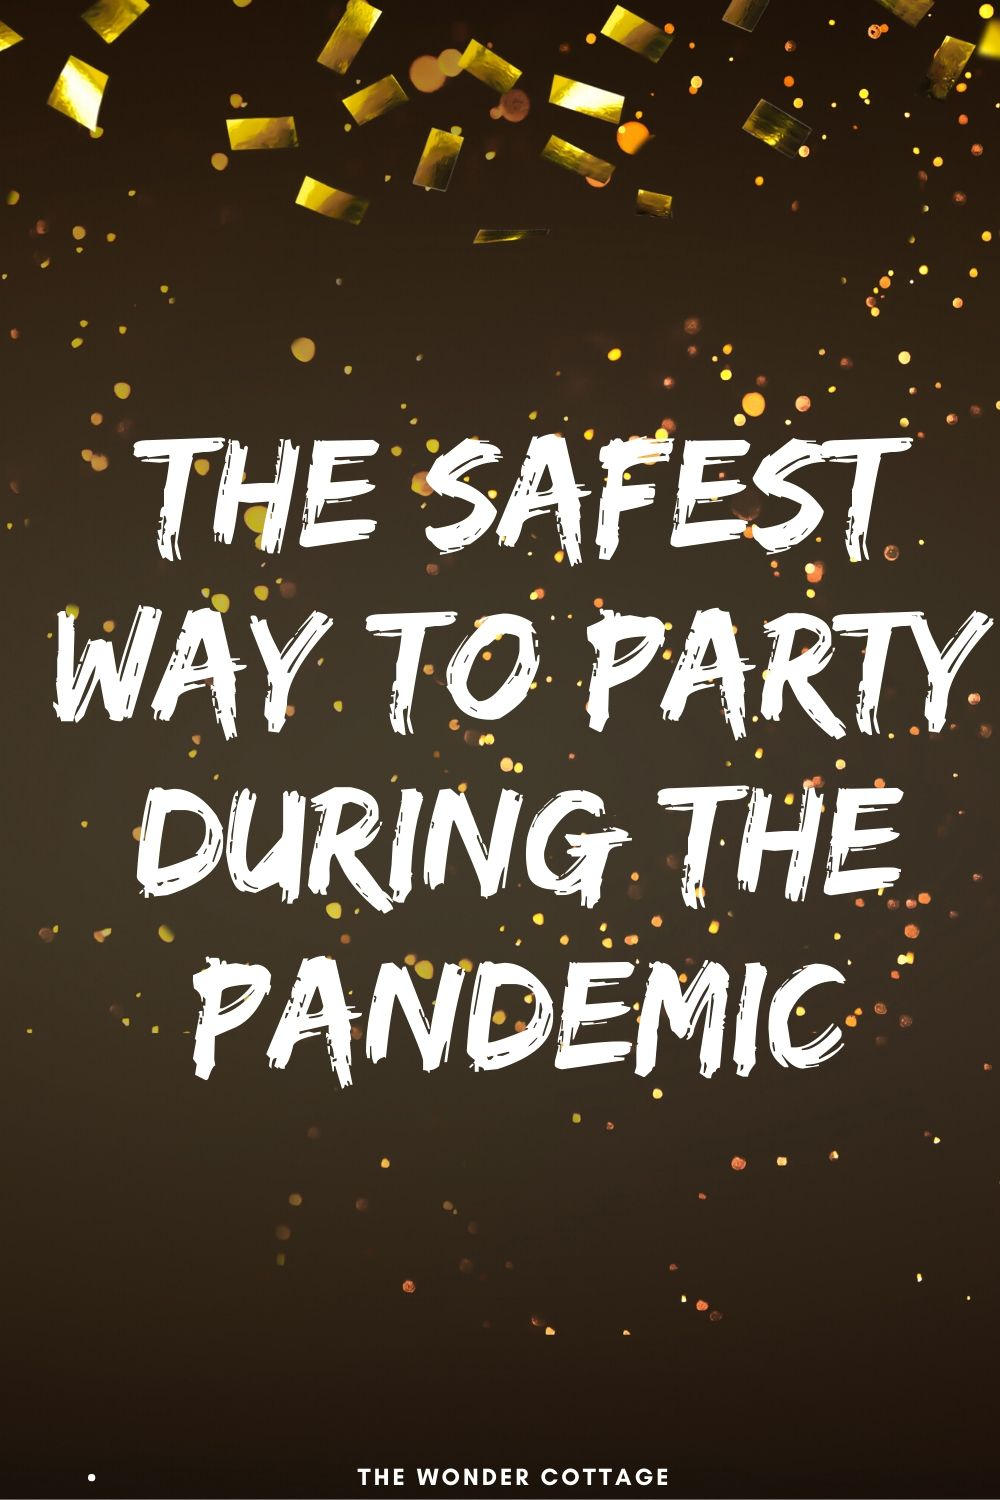 The safest way to party during the pandemic